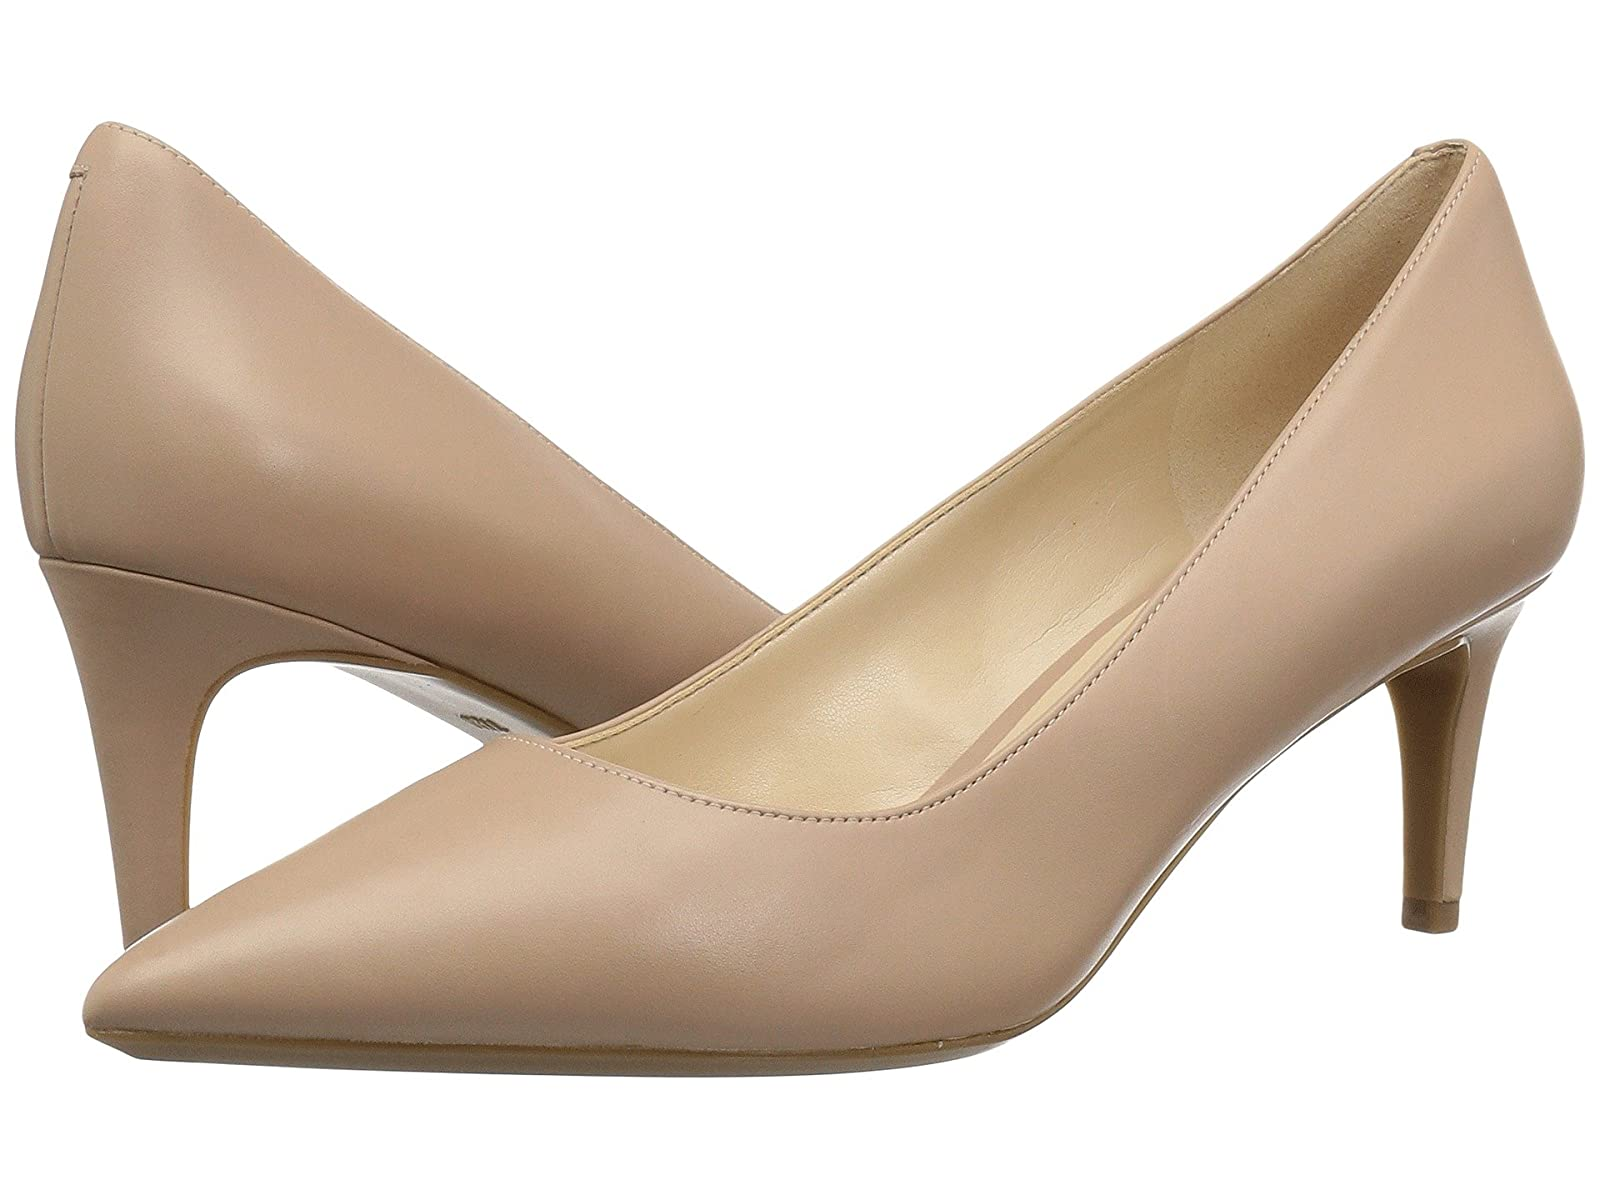 Nine West Soho9x9Atmospheric grades have affordable shoes